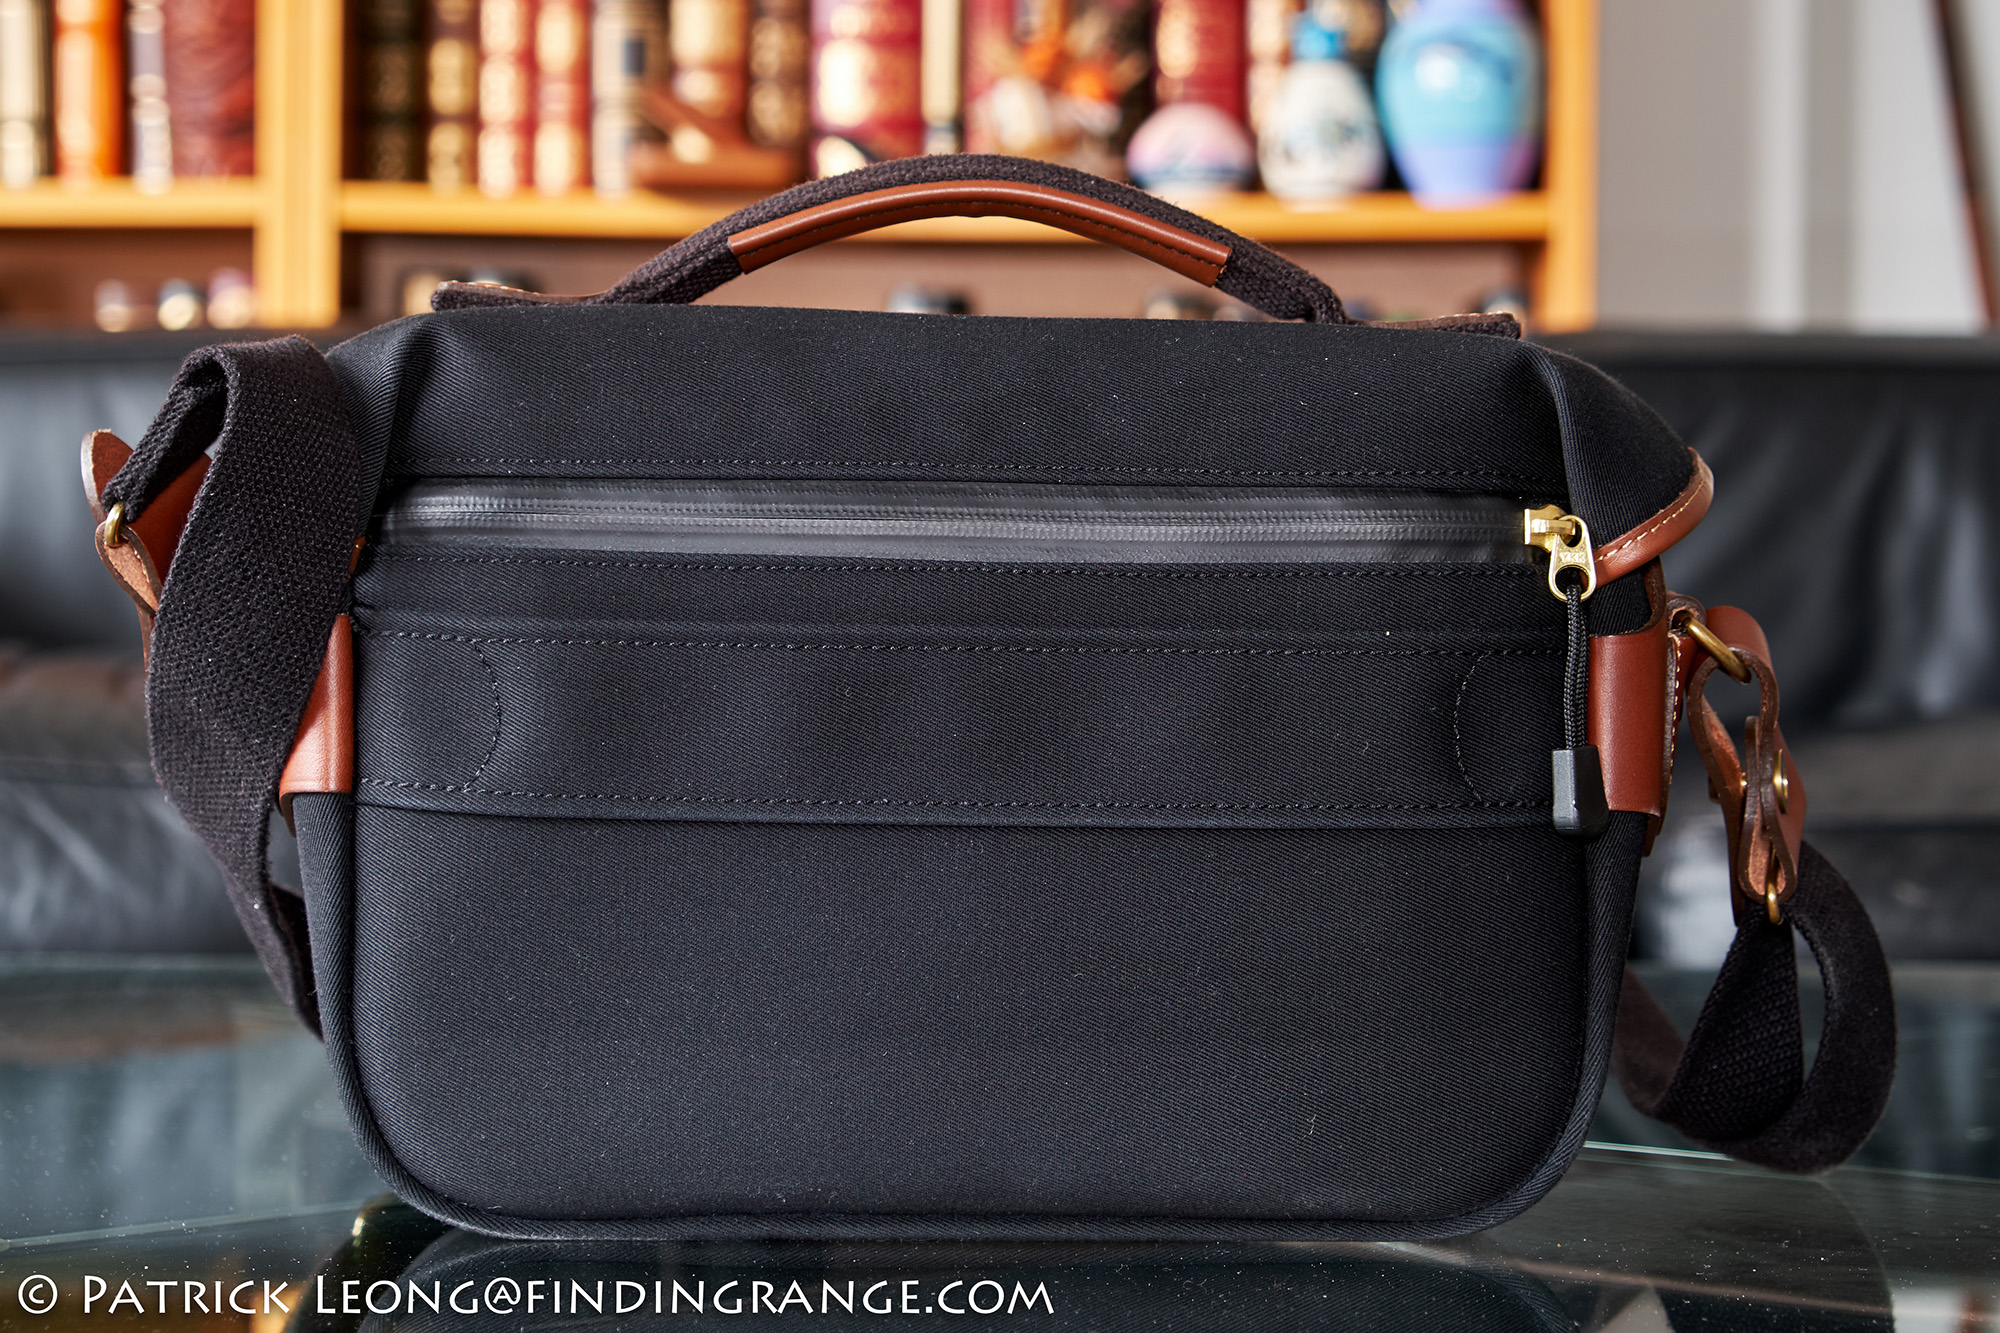 Billingham Hadley Small Pro Camera Bag Review Shoulder Sage Choc Leather Trim This Design Is Hugely Beneficial In Preventing The Elements From Entering Your